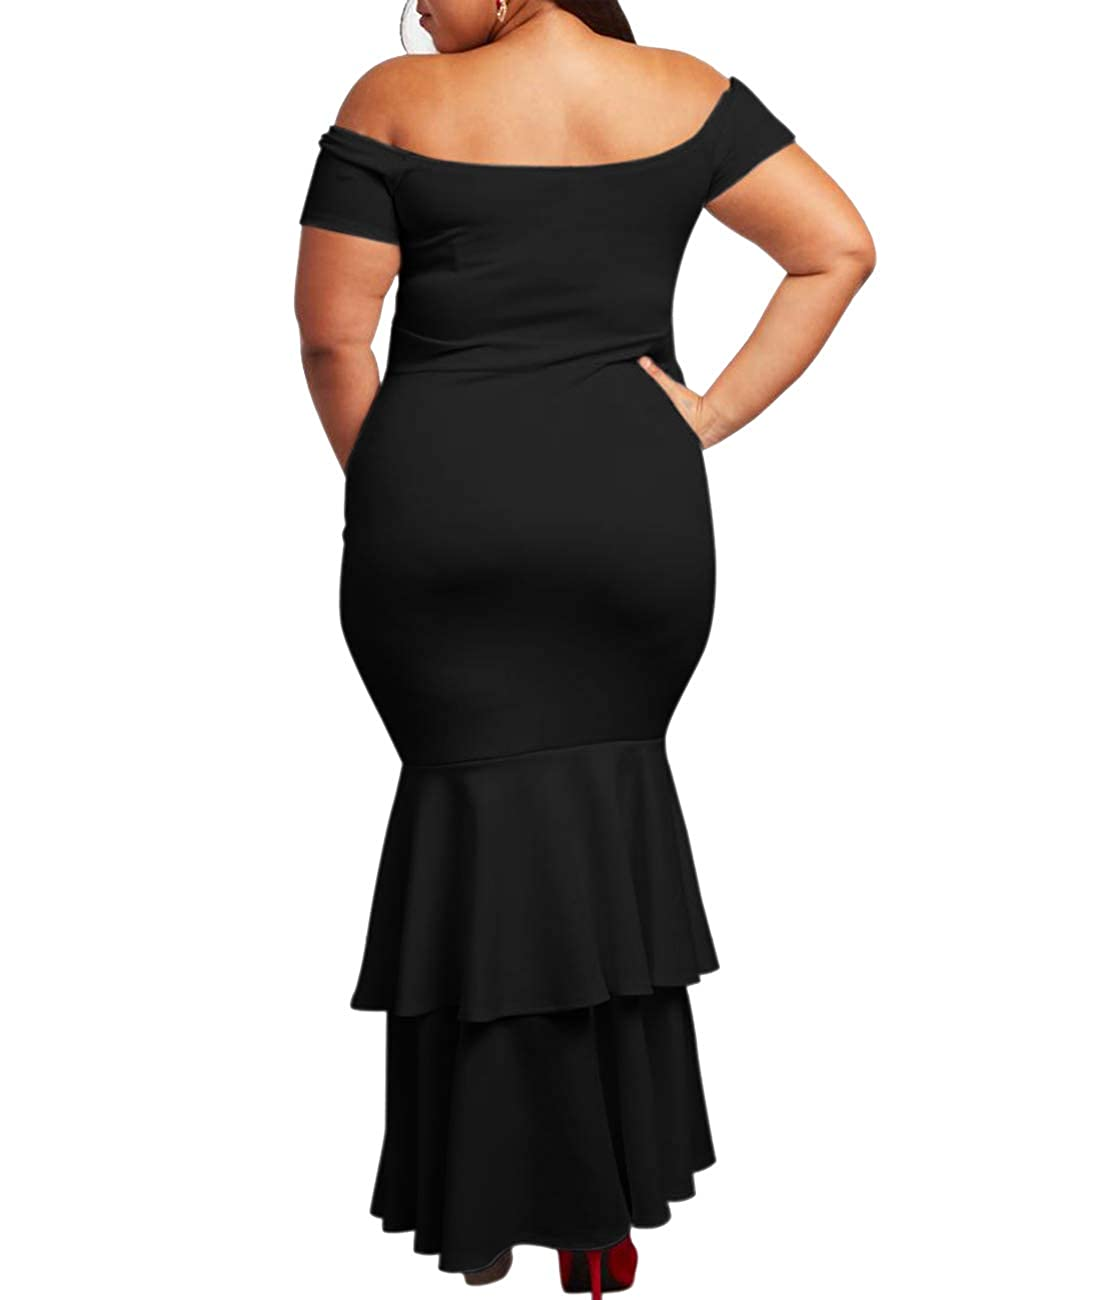 2880d4b7292 Lalagen Womens Off Shoulder Bodycon Ruffle Mermaid Plus Size Party Maxi  Dress at Amazon Women s Clothing store